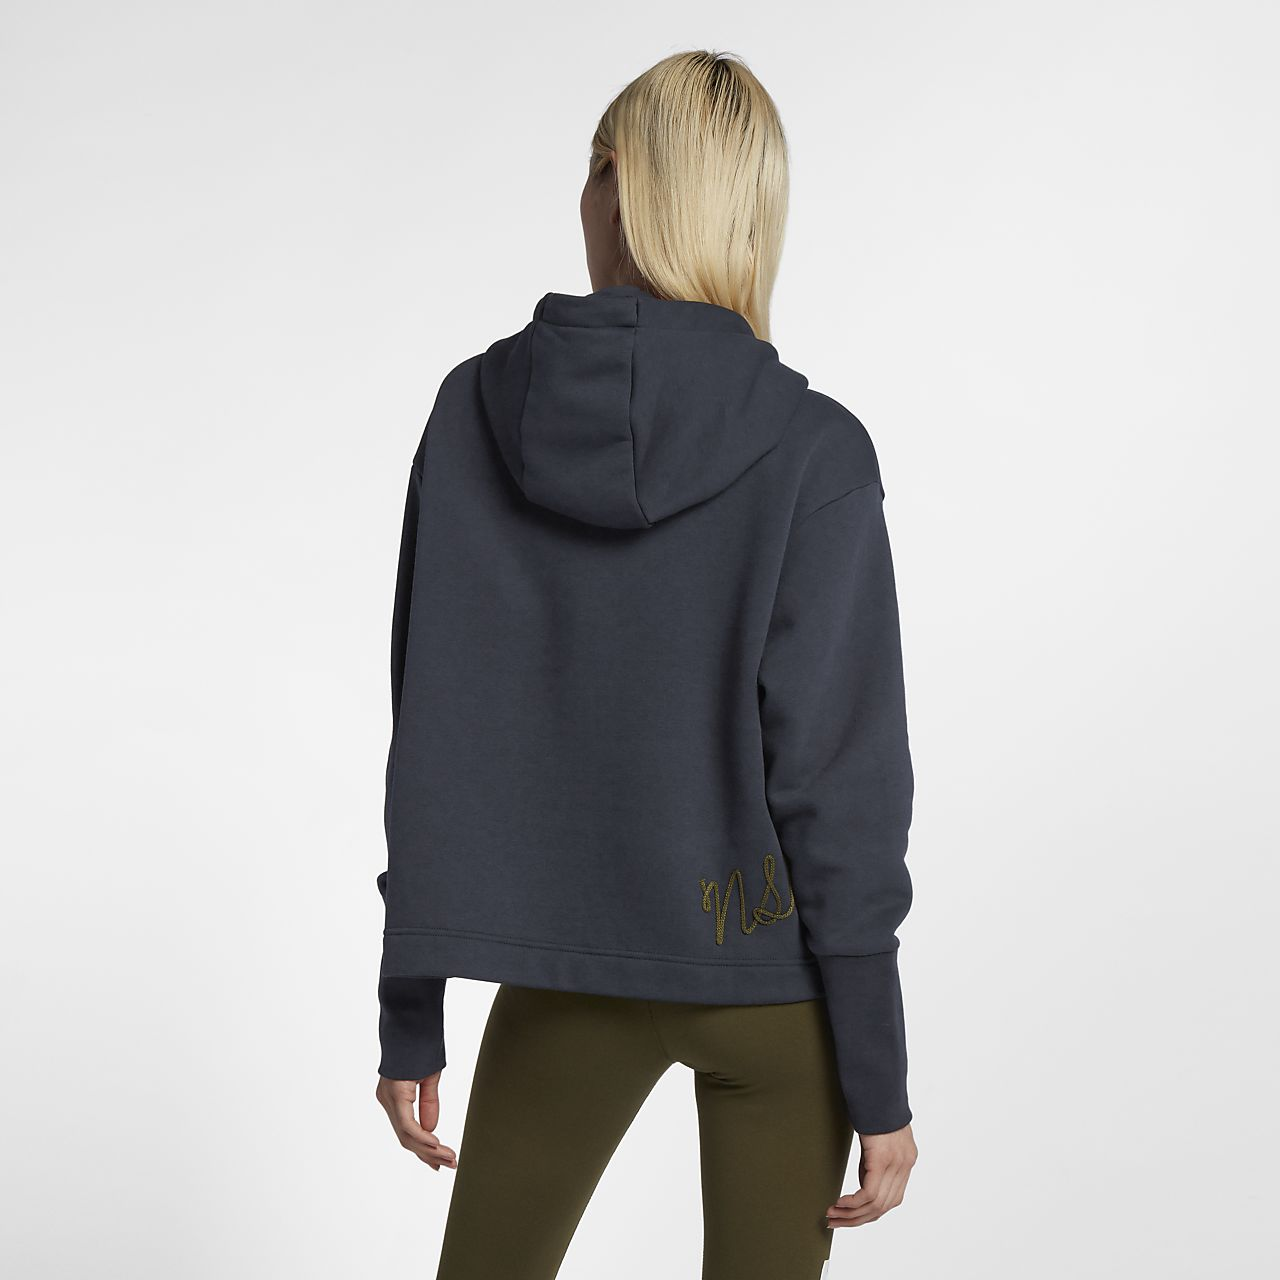 4a86fc7c186 Low Resolution Nike Sportswear Women s Fleece Hoodie Nike Sportswear  Women s Fleece Hoodie